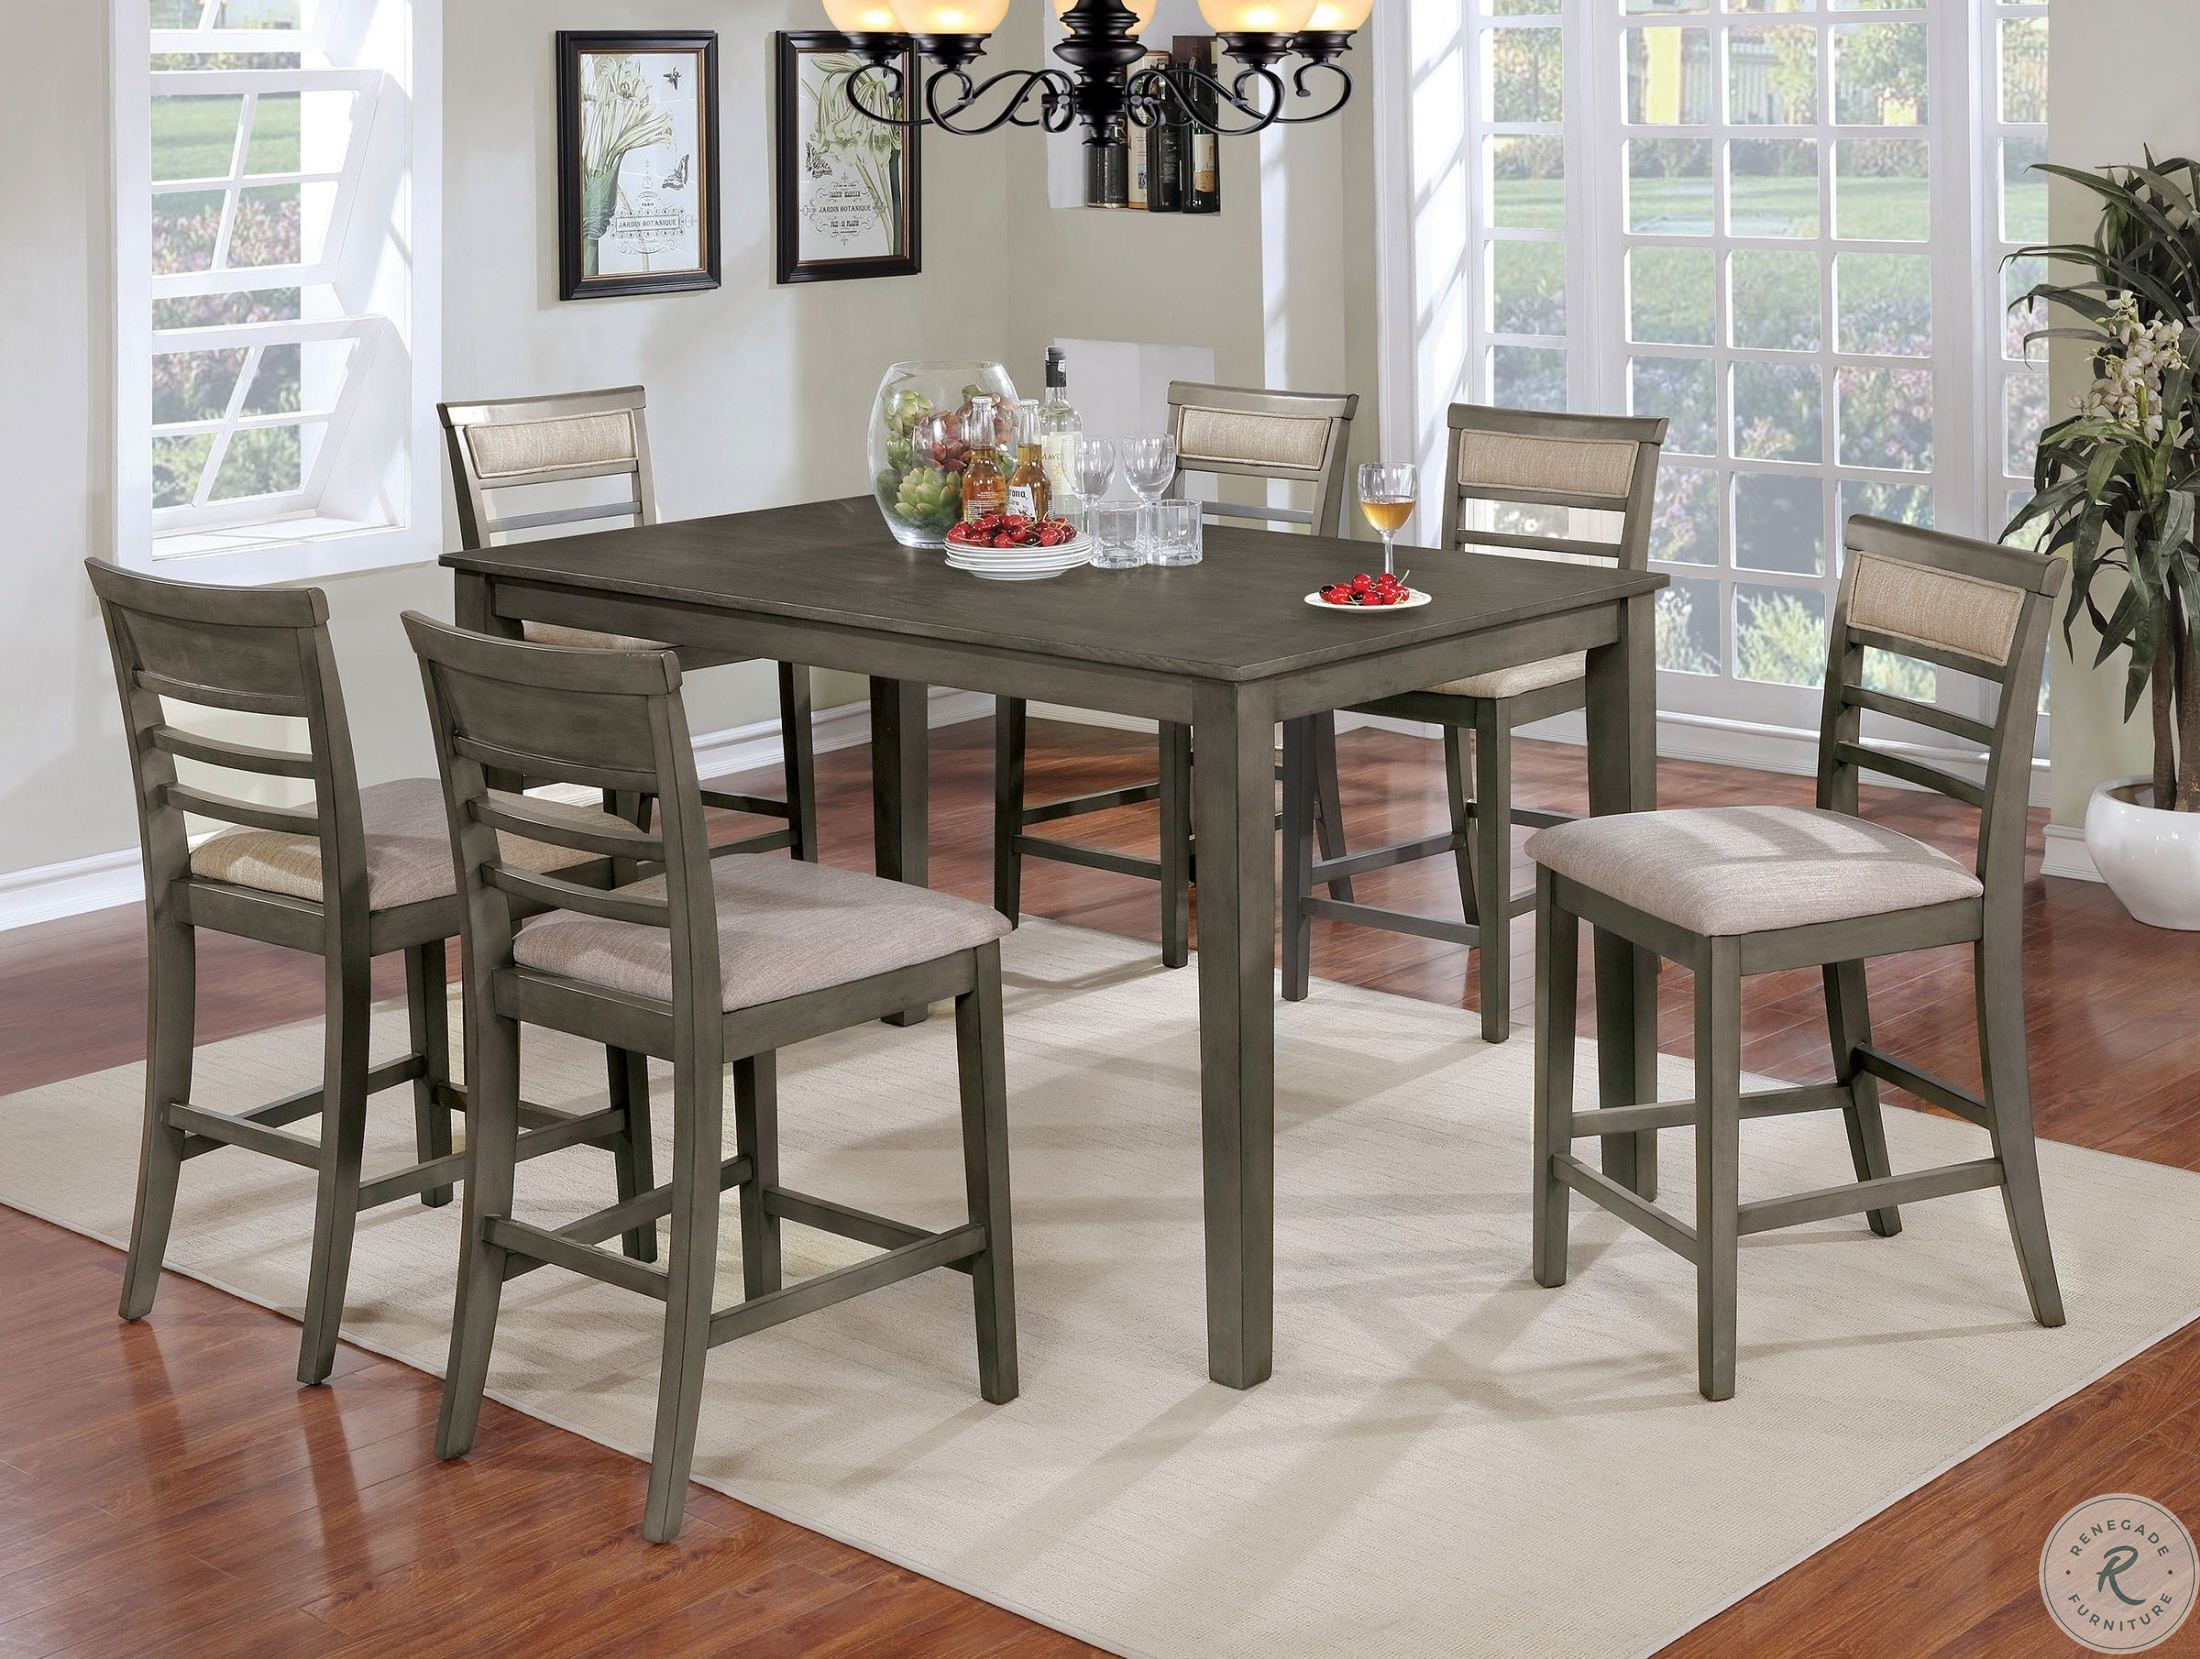 Fafnir Gray 7 Piece Counter Height Dining Room Set Inside 2017 Anette 3 Piece Counter Height Dining Sets (View 12 of 20)